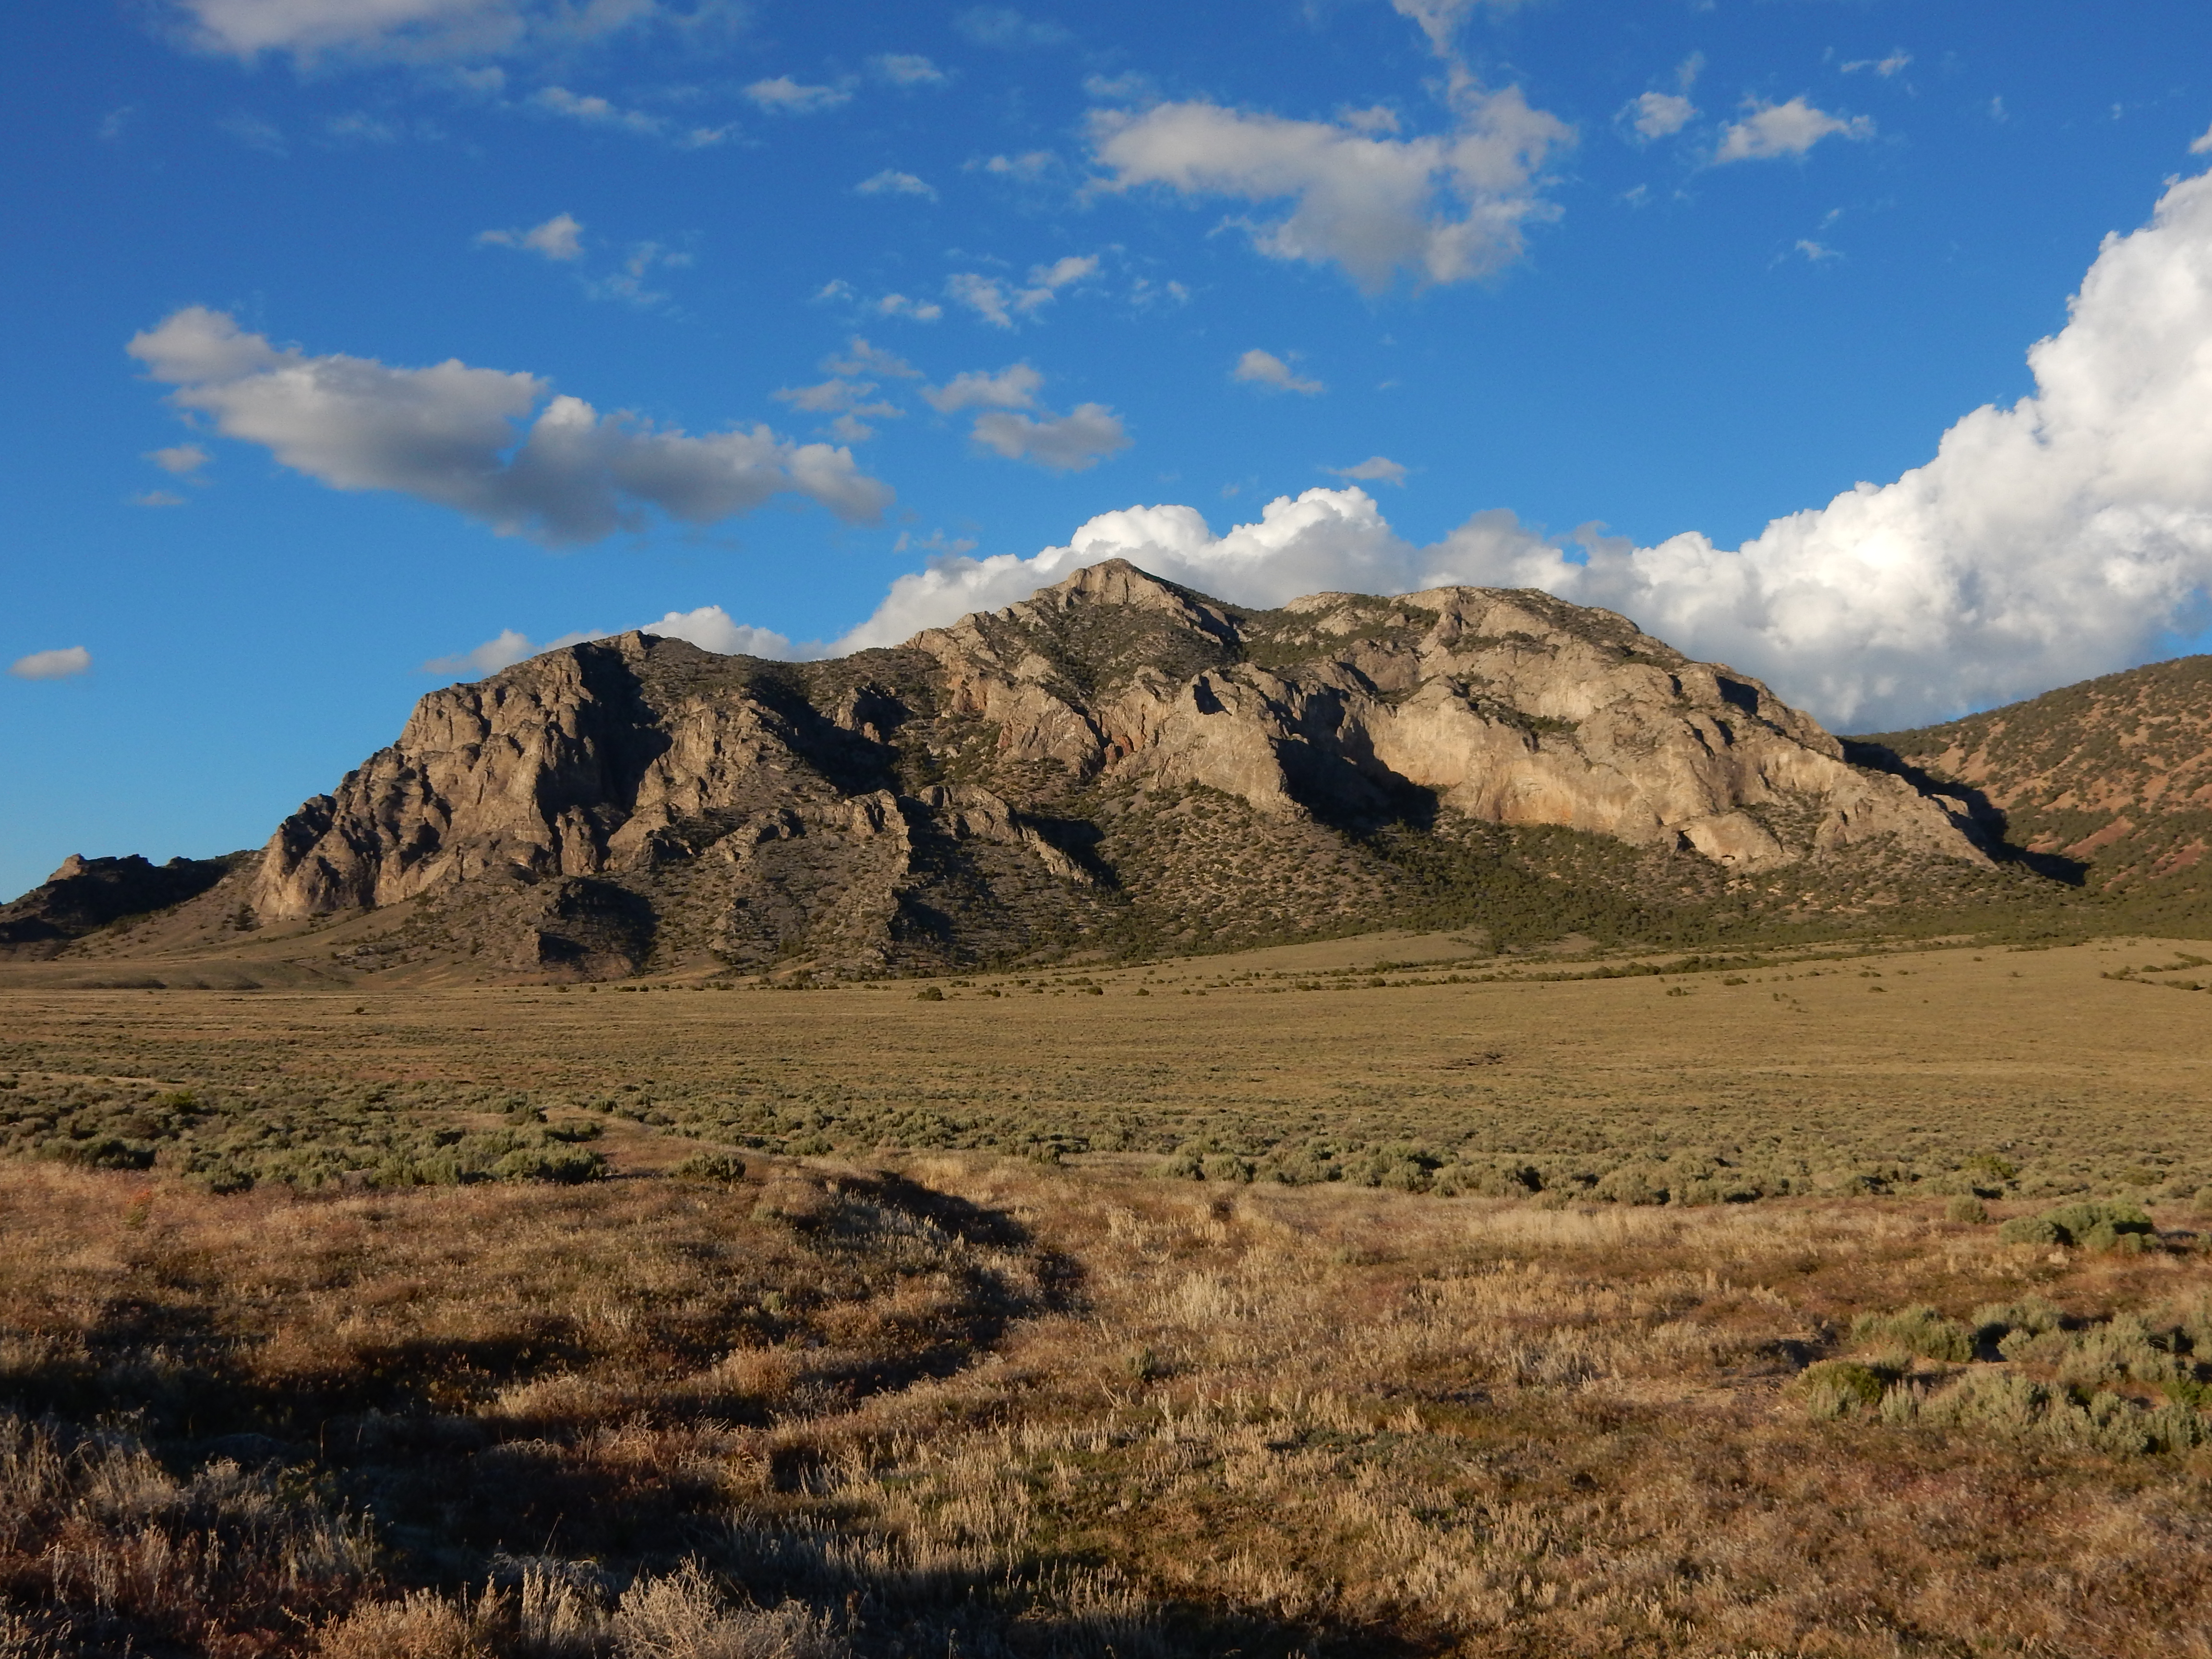 A mountain in the northern part of Great Basin National Park catching the last rays of the setting sun.